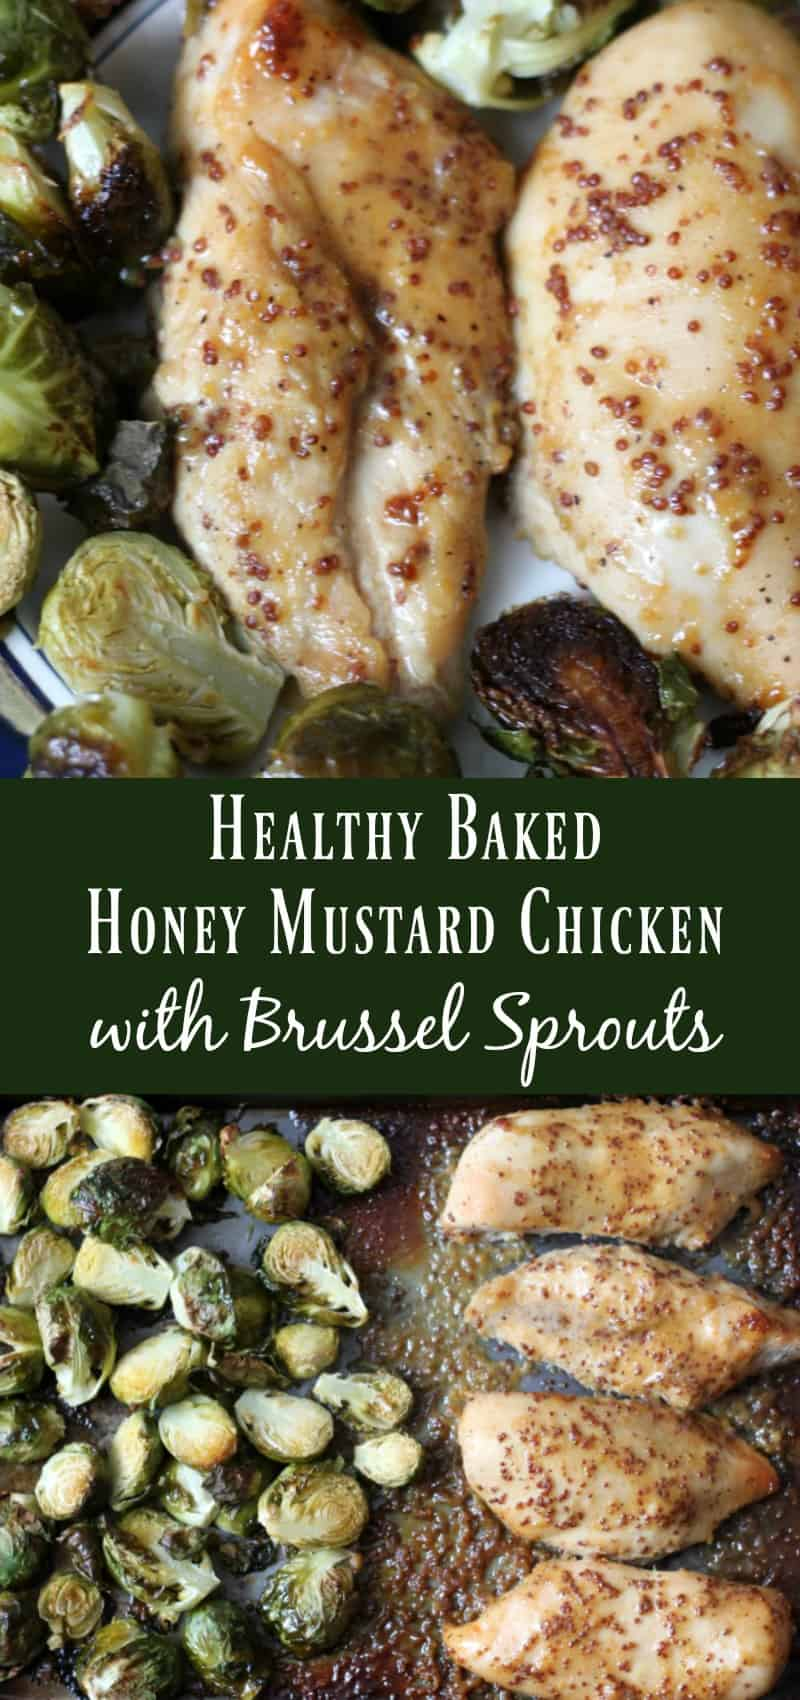 Healthy Baked Honey Mustard Chicken with Brussel Sprouts